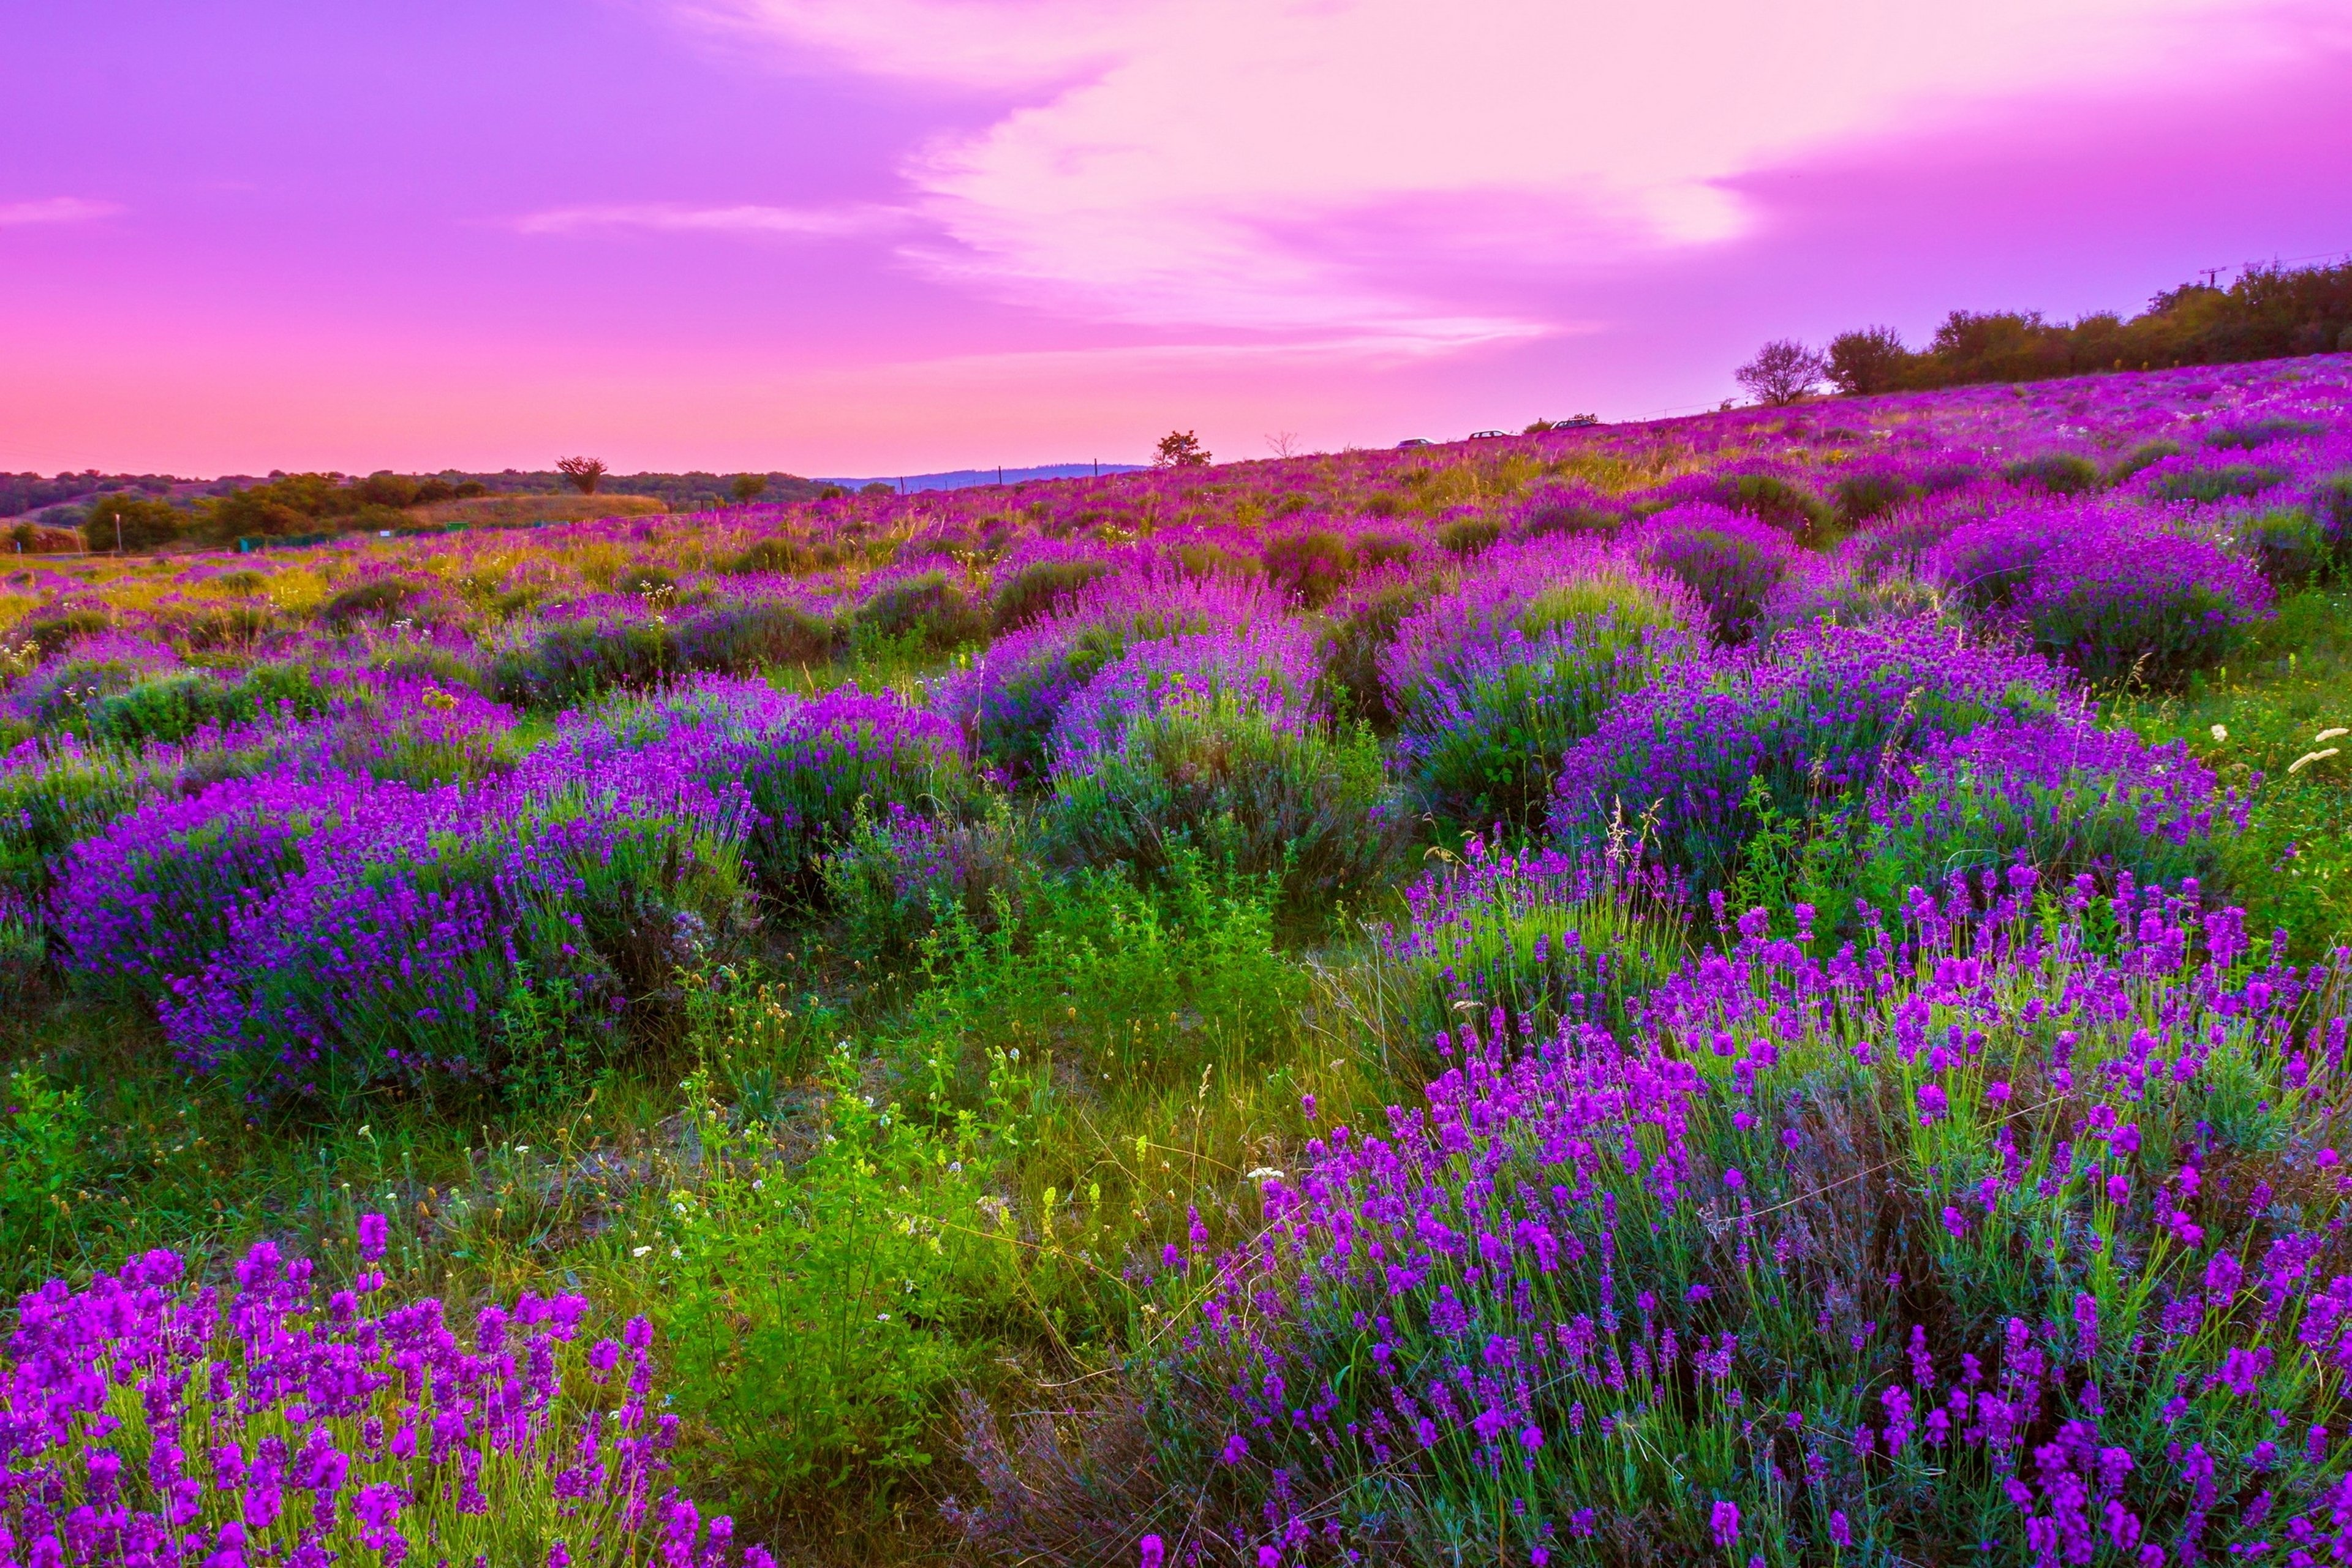 sky pink colorful flowers plants spring landscape nature